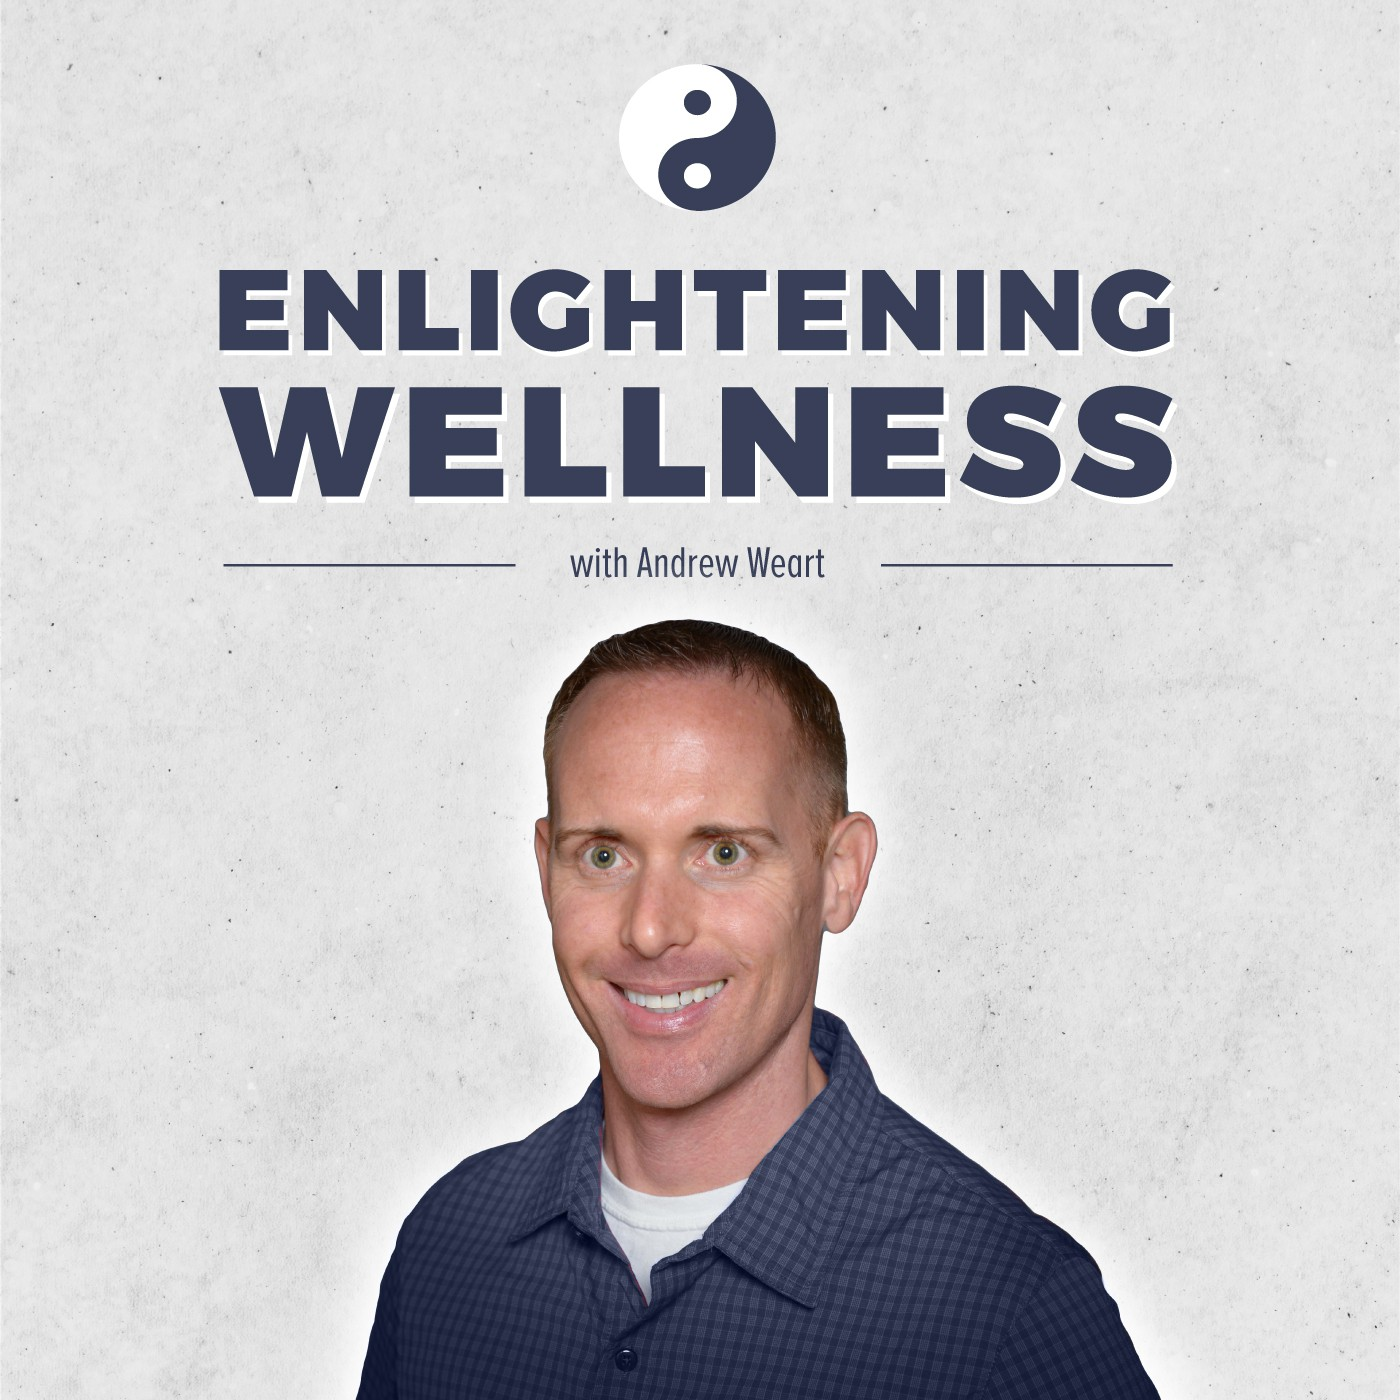 Design a logo for the Enlightening Wellness Podcast. Clean catchy looks that grab the listener's attention